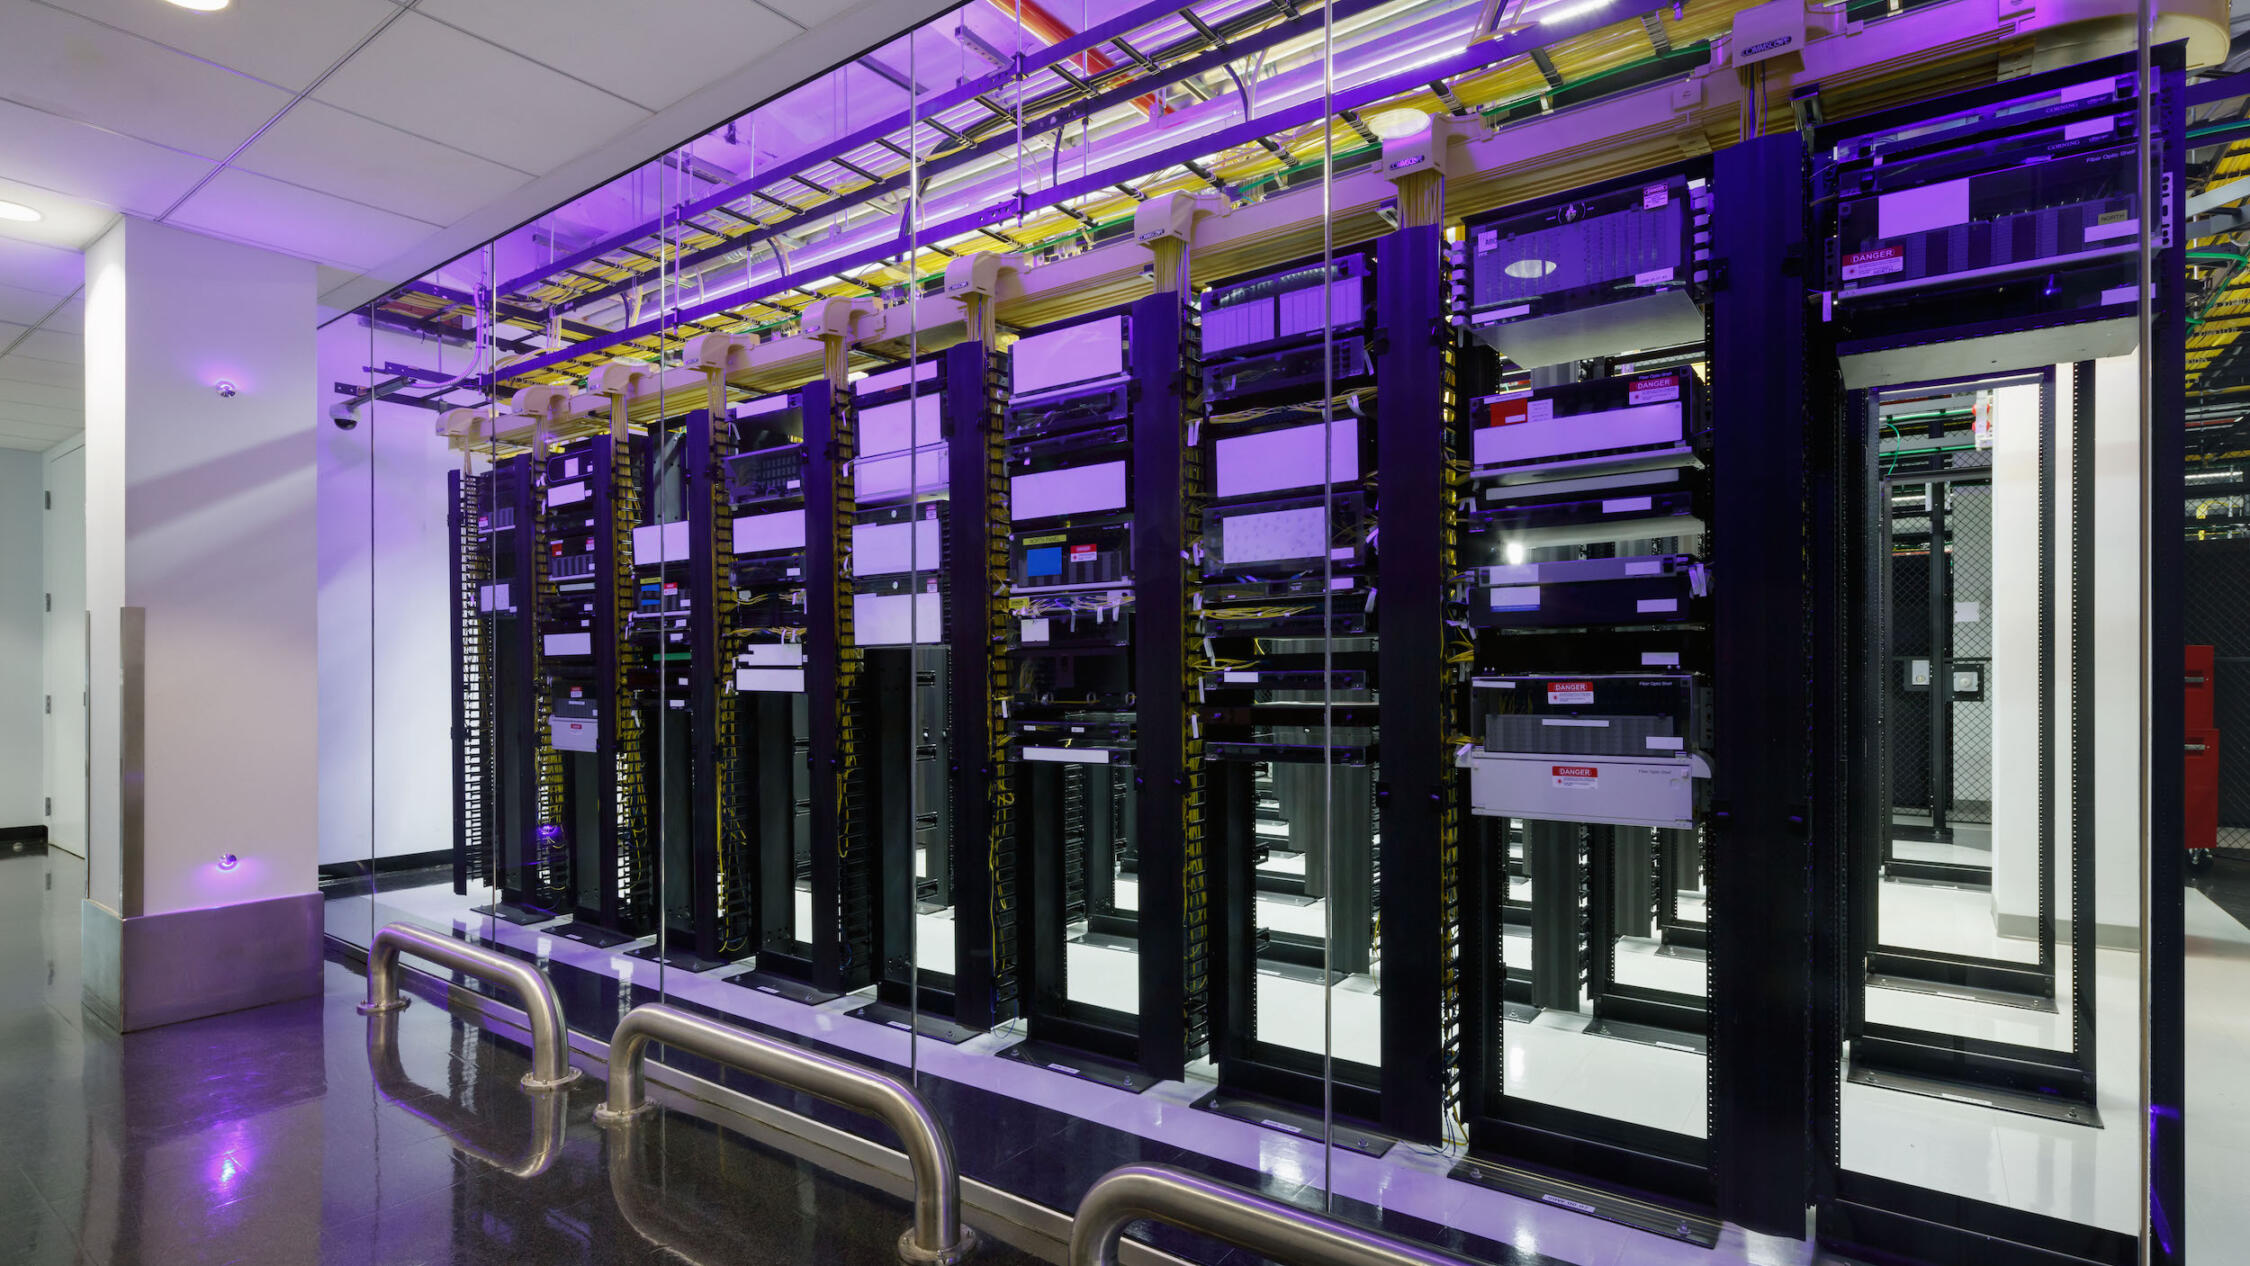 325 Hudson data center with rows of servers in racks